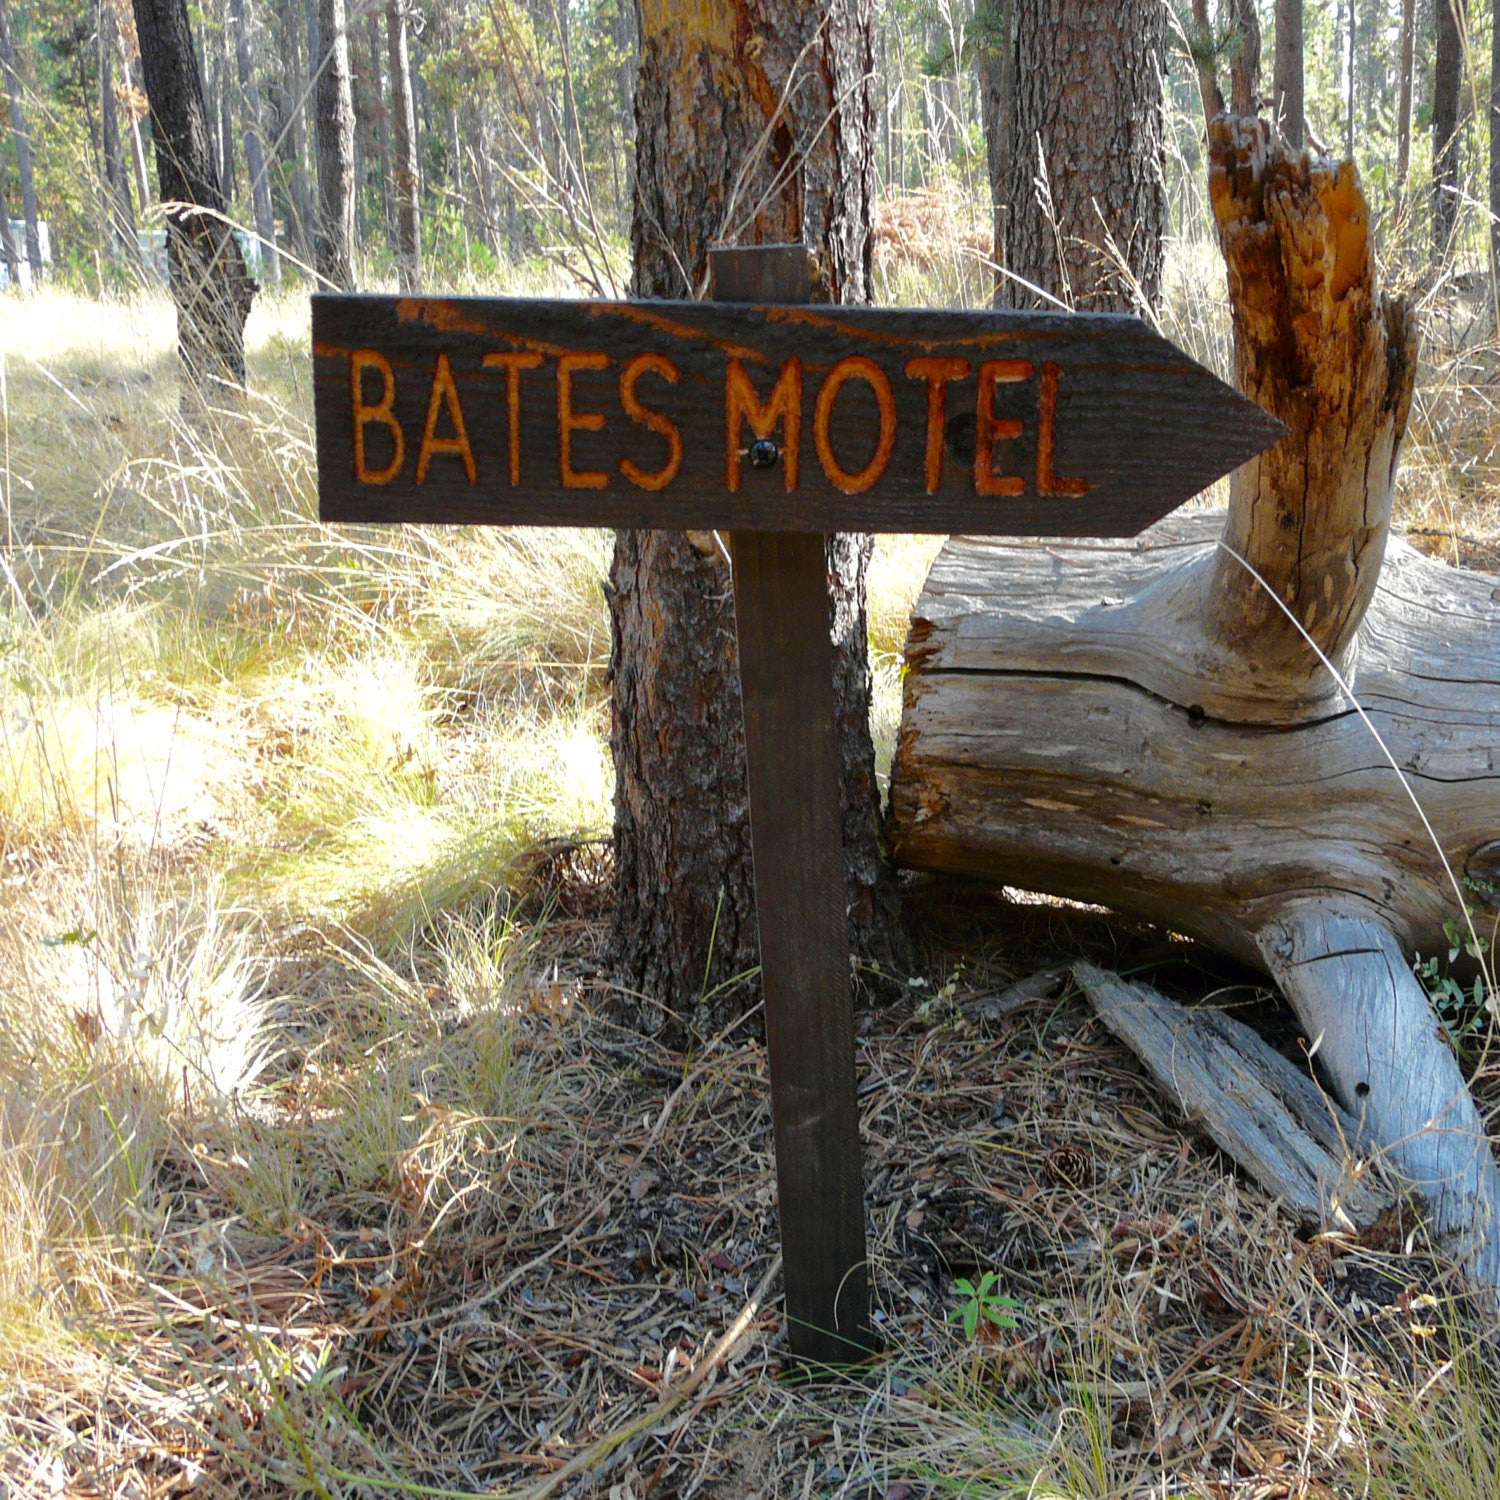 Psycho Bates Motel Halloween Lawn Ornament Sign - Cedar Wood Holiday Decor